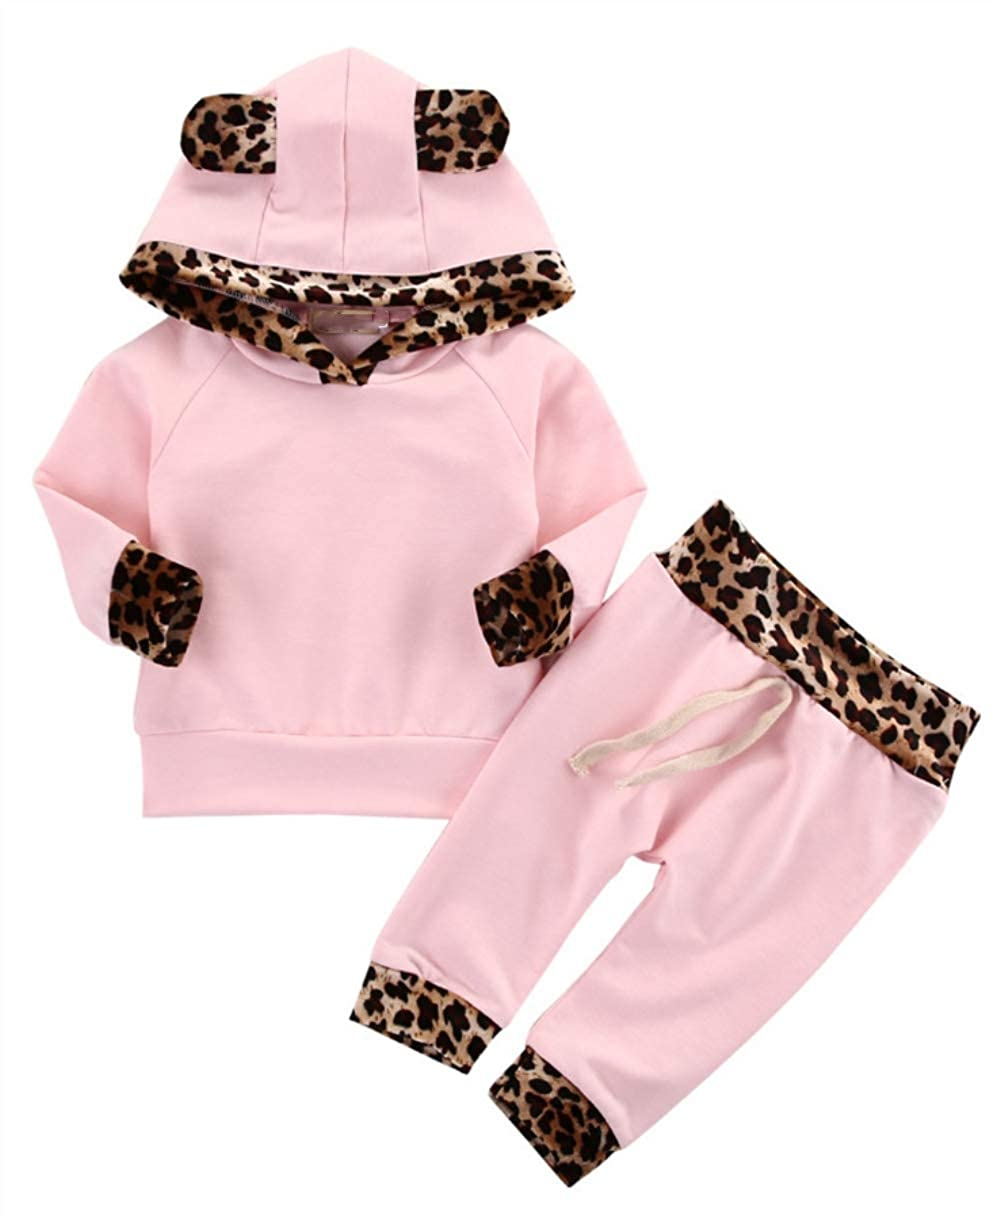 Toddler Infant Newborn Baby Kids Leopard Print Hoodie Long Sleeve Tops+Long Pants Outfits Set Girls Boys Clothing Sets